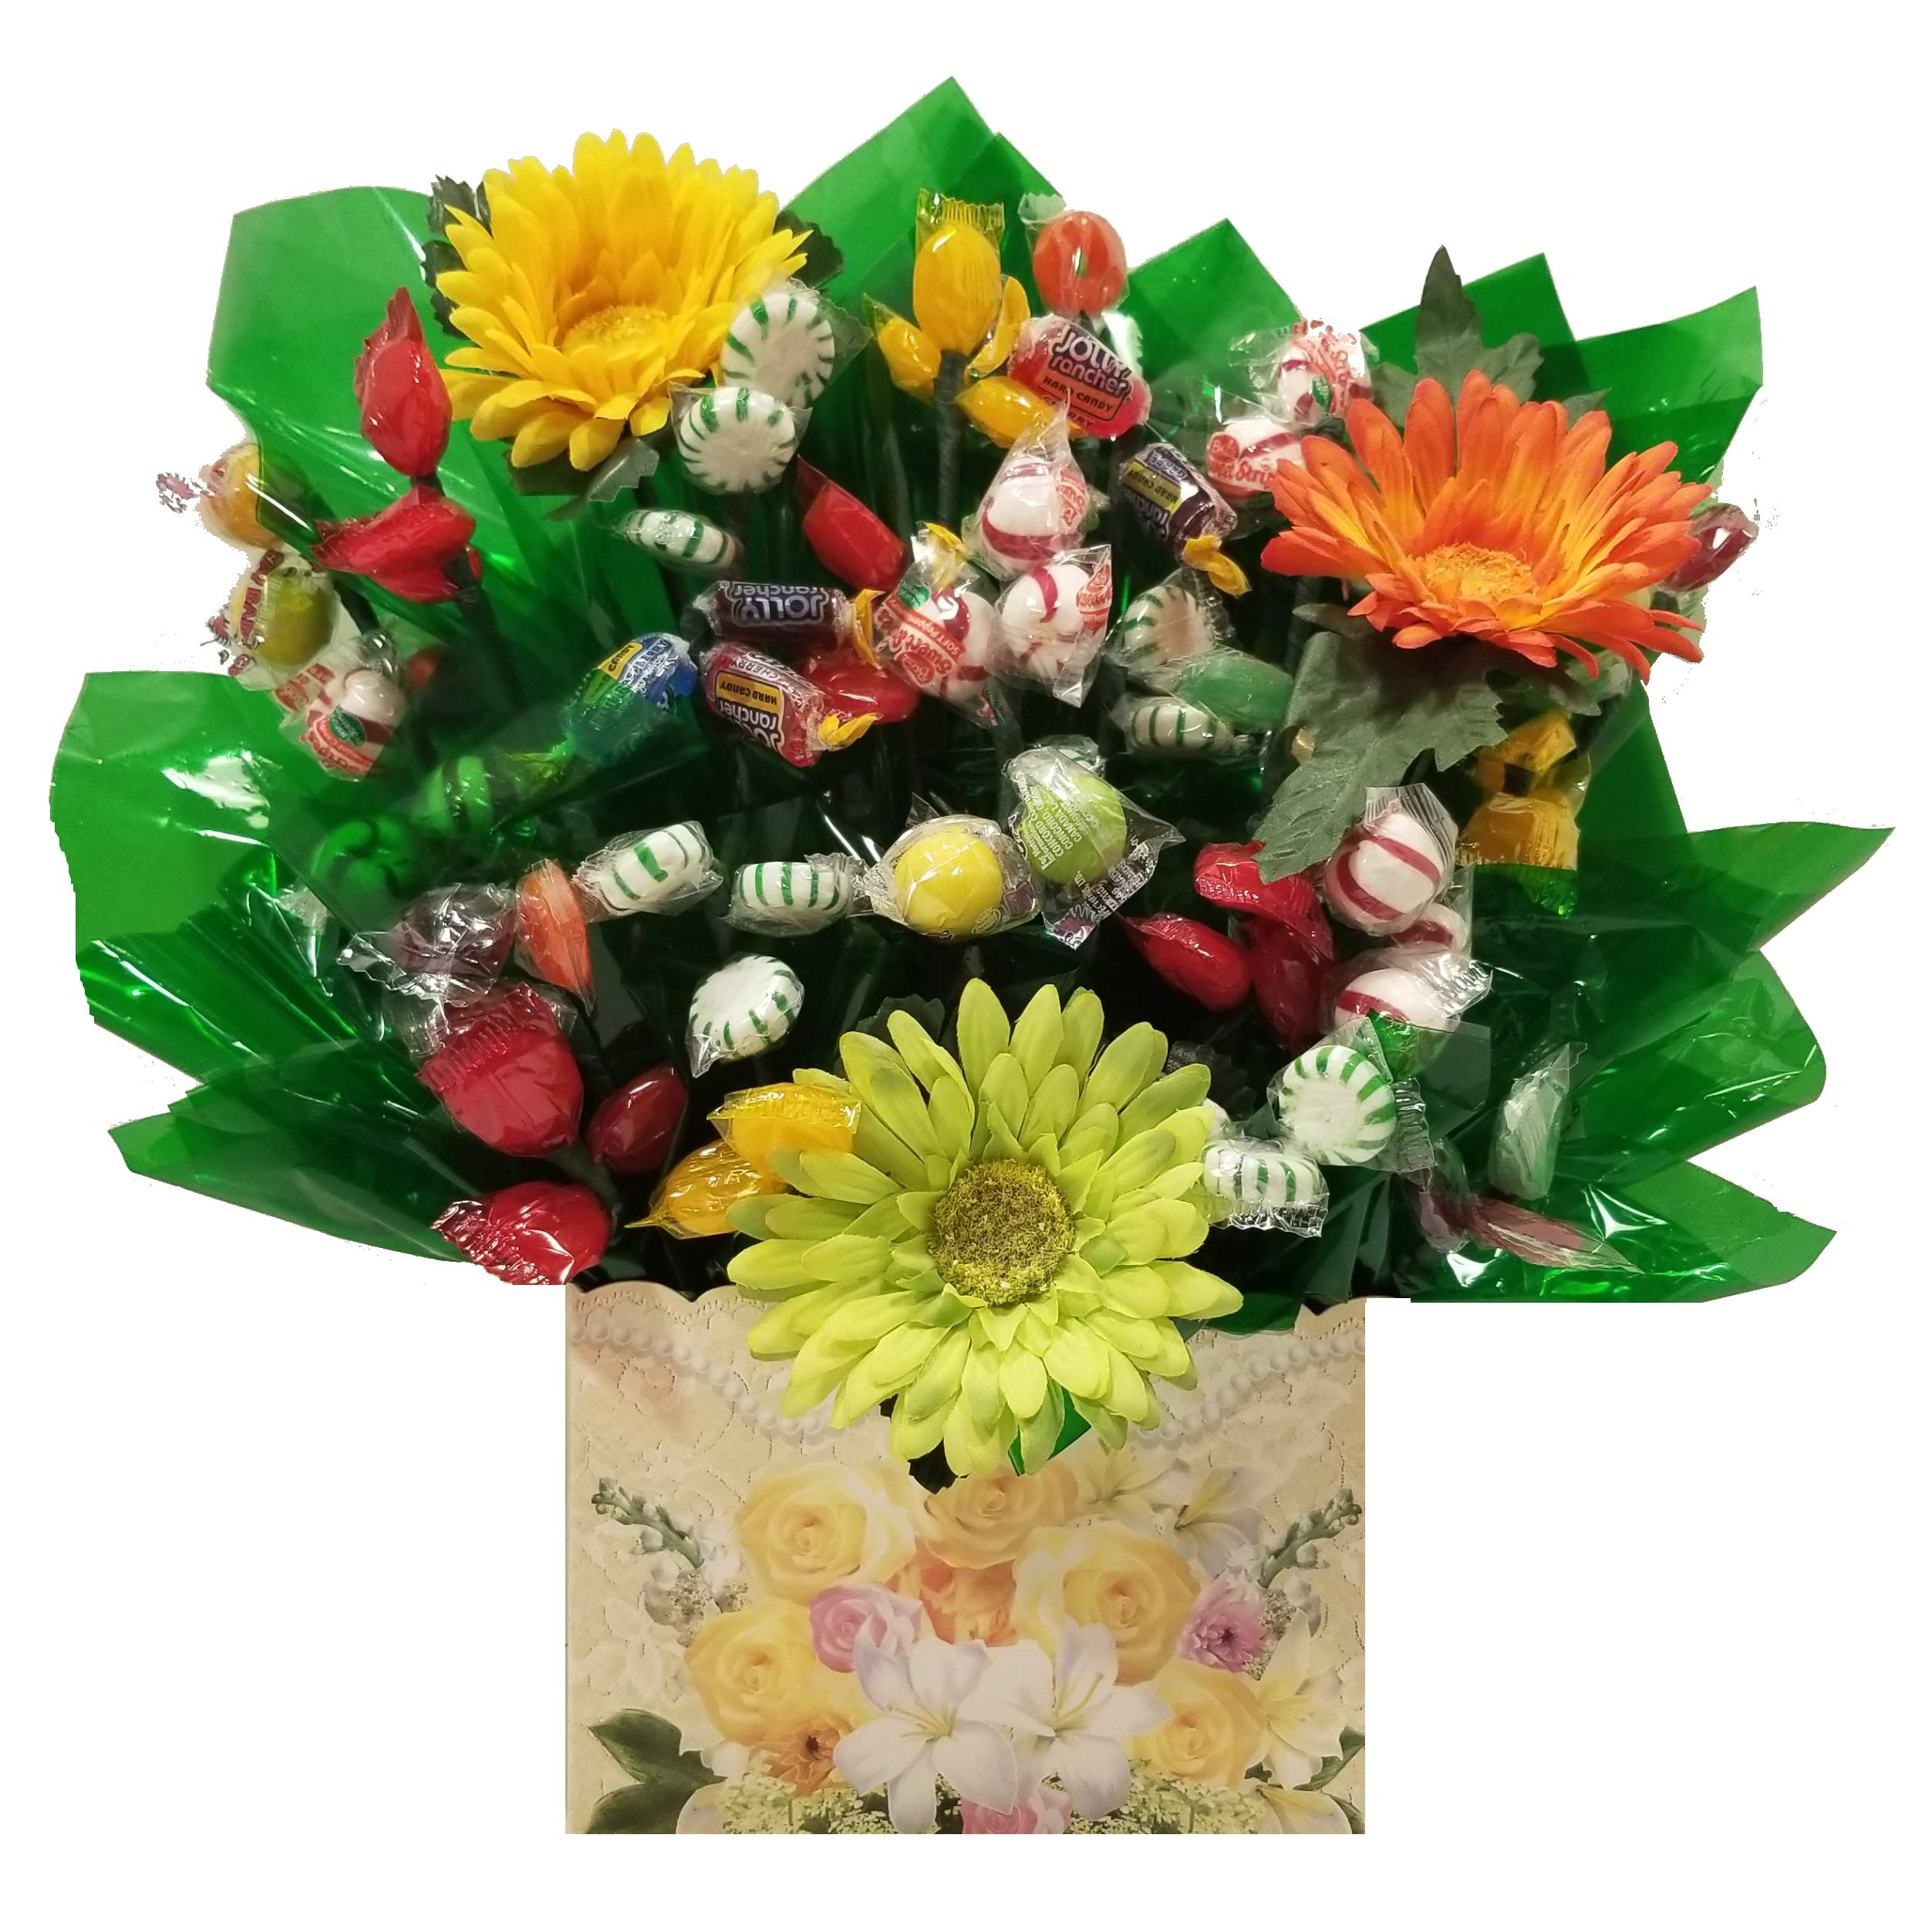 Flowers Hard Candy Bouquet gift - Great as a Birthday, Thank You, Get Well Soon, New Baby, New Home, Congratulations, Valentines Day gift or for any occasion (Many OPTIONS available below) by So Sweet of You